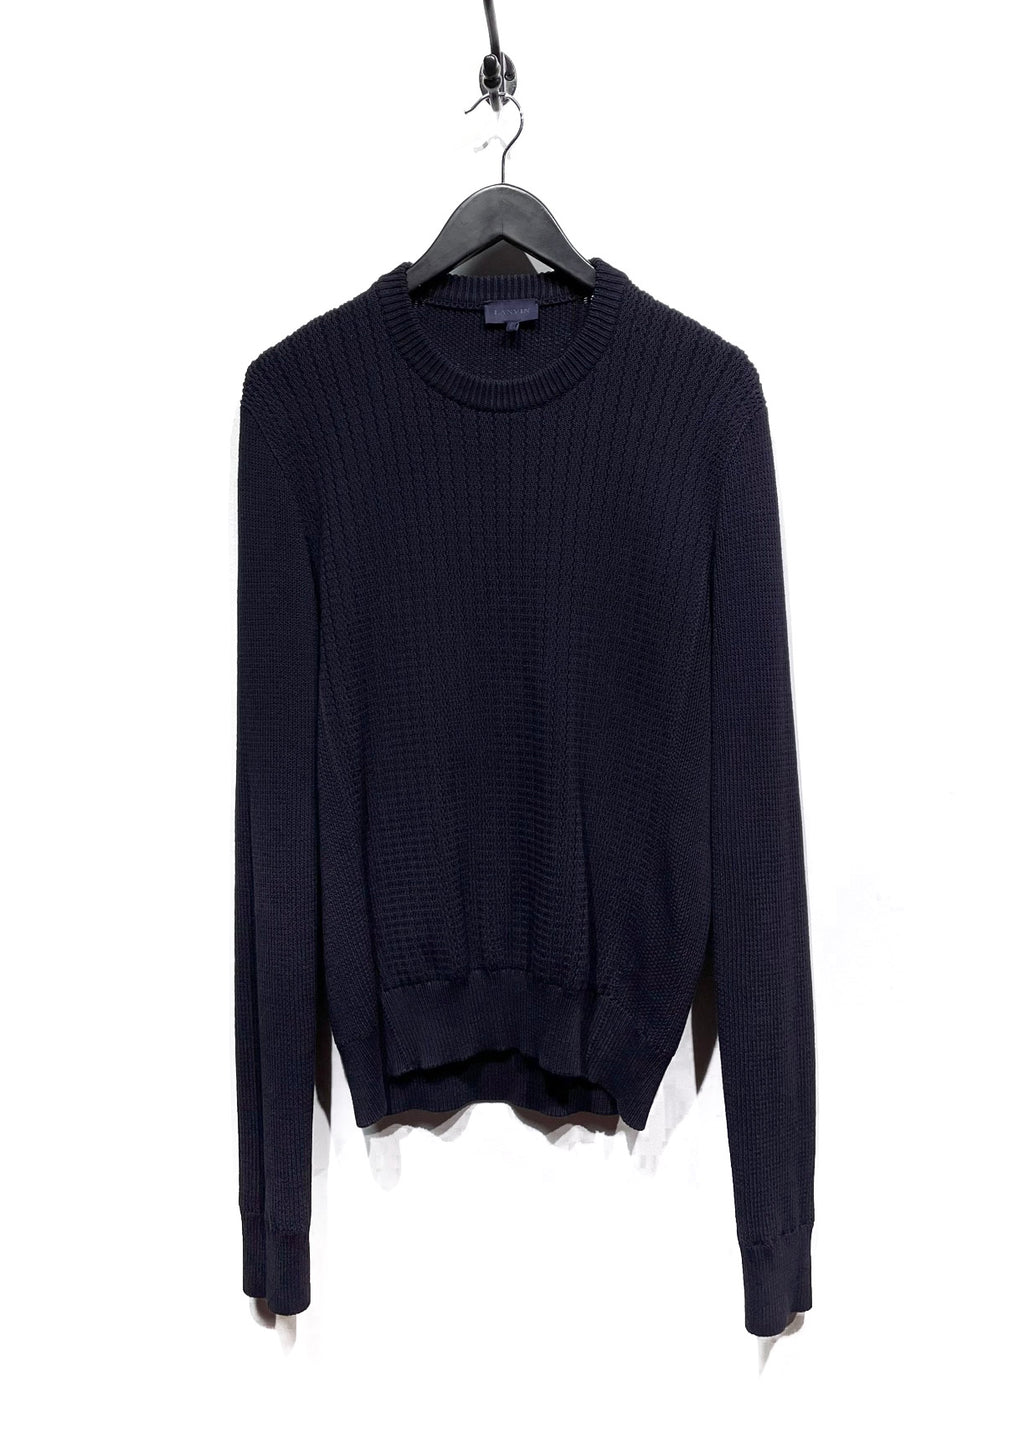 Lanvin Navy Cotton Knit Sweater